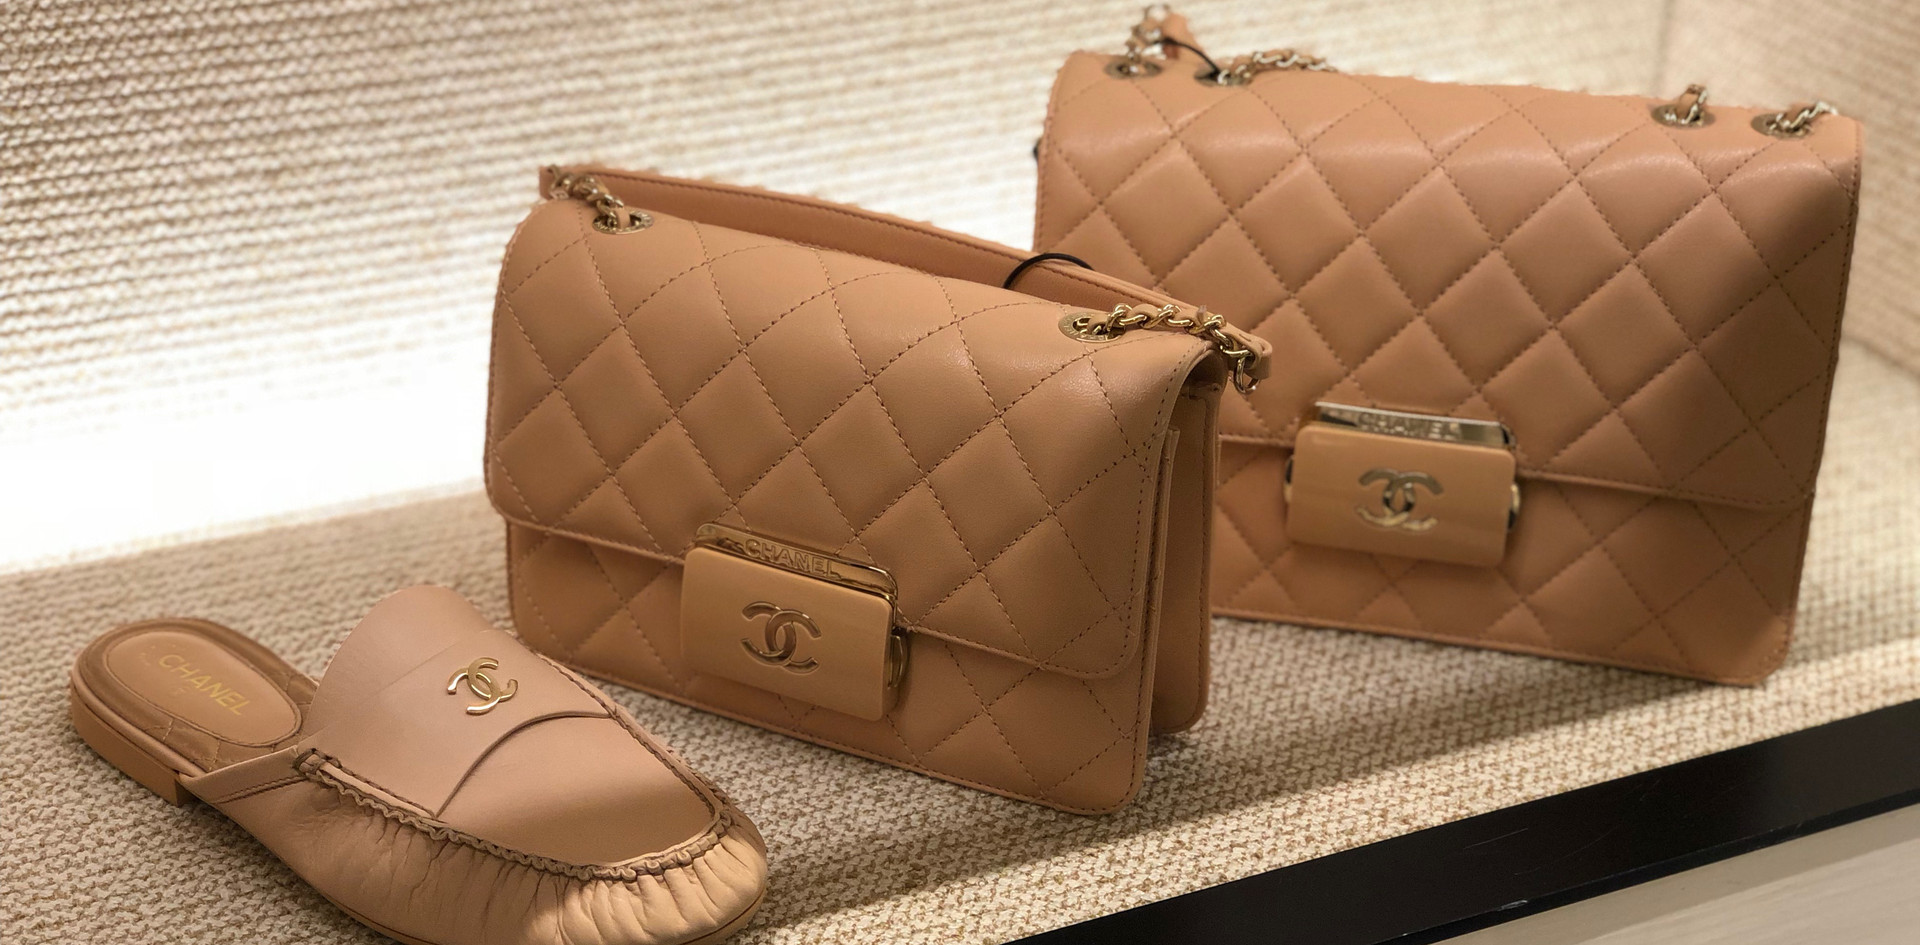 Chanel matching bag shoes